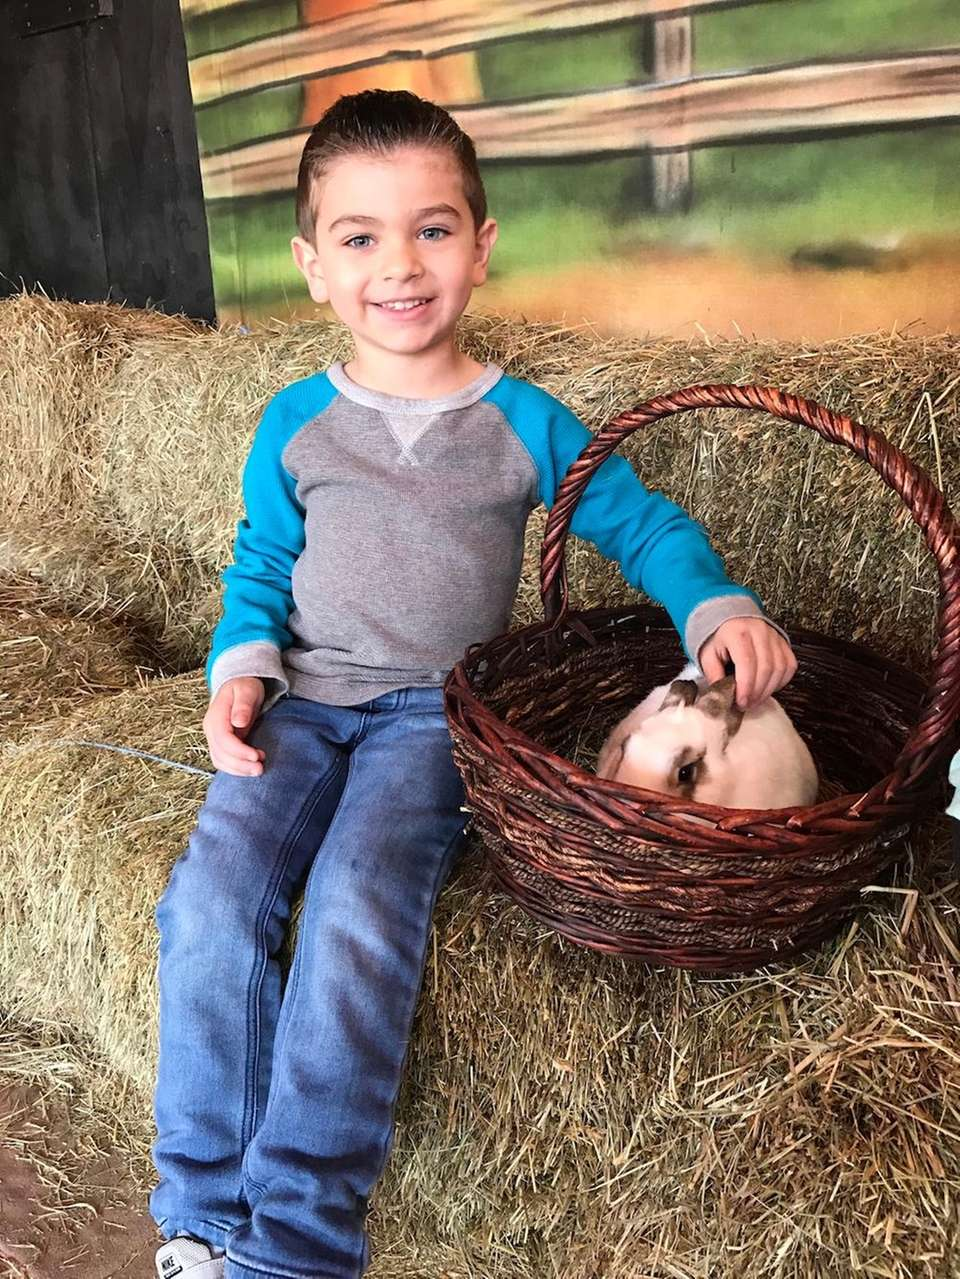 CJ Latwaitis age 5, petting bunnies day before